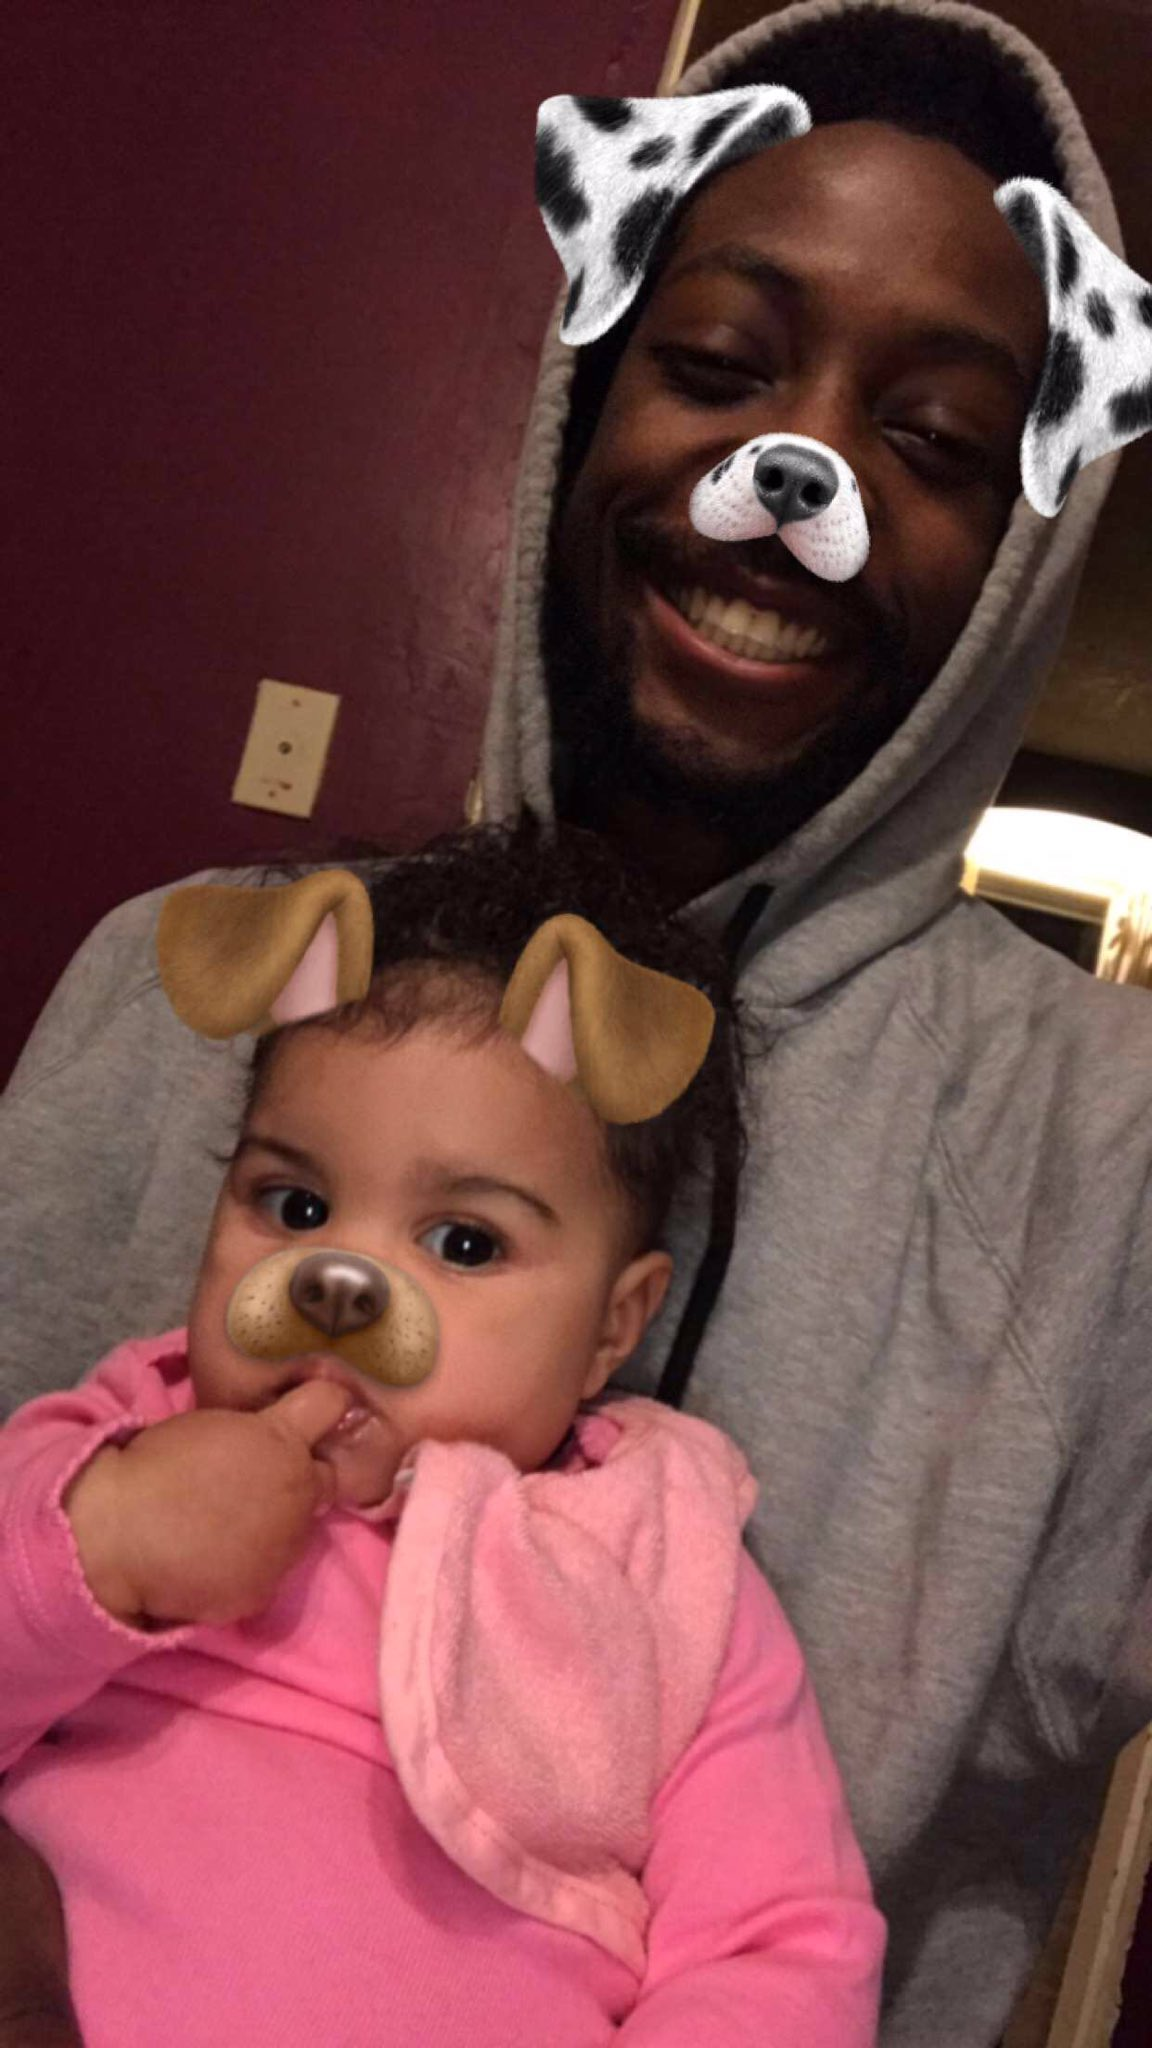 Happy 1st Birthday to my goddaughter Zendaya today